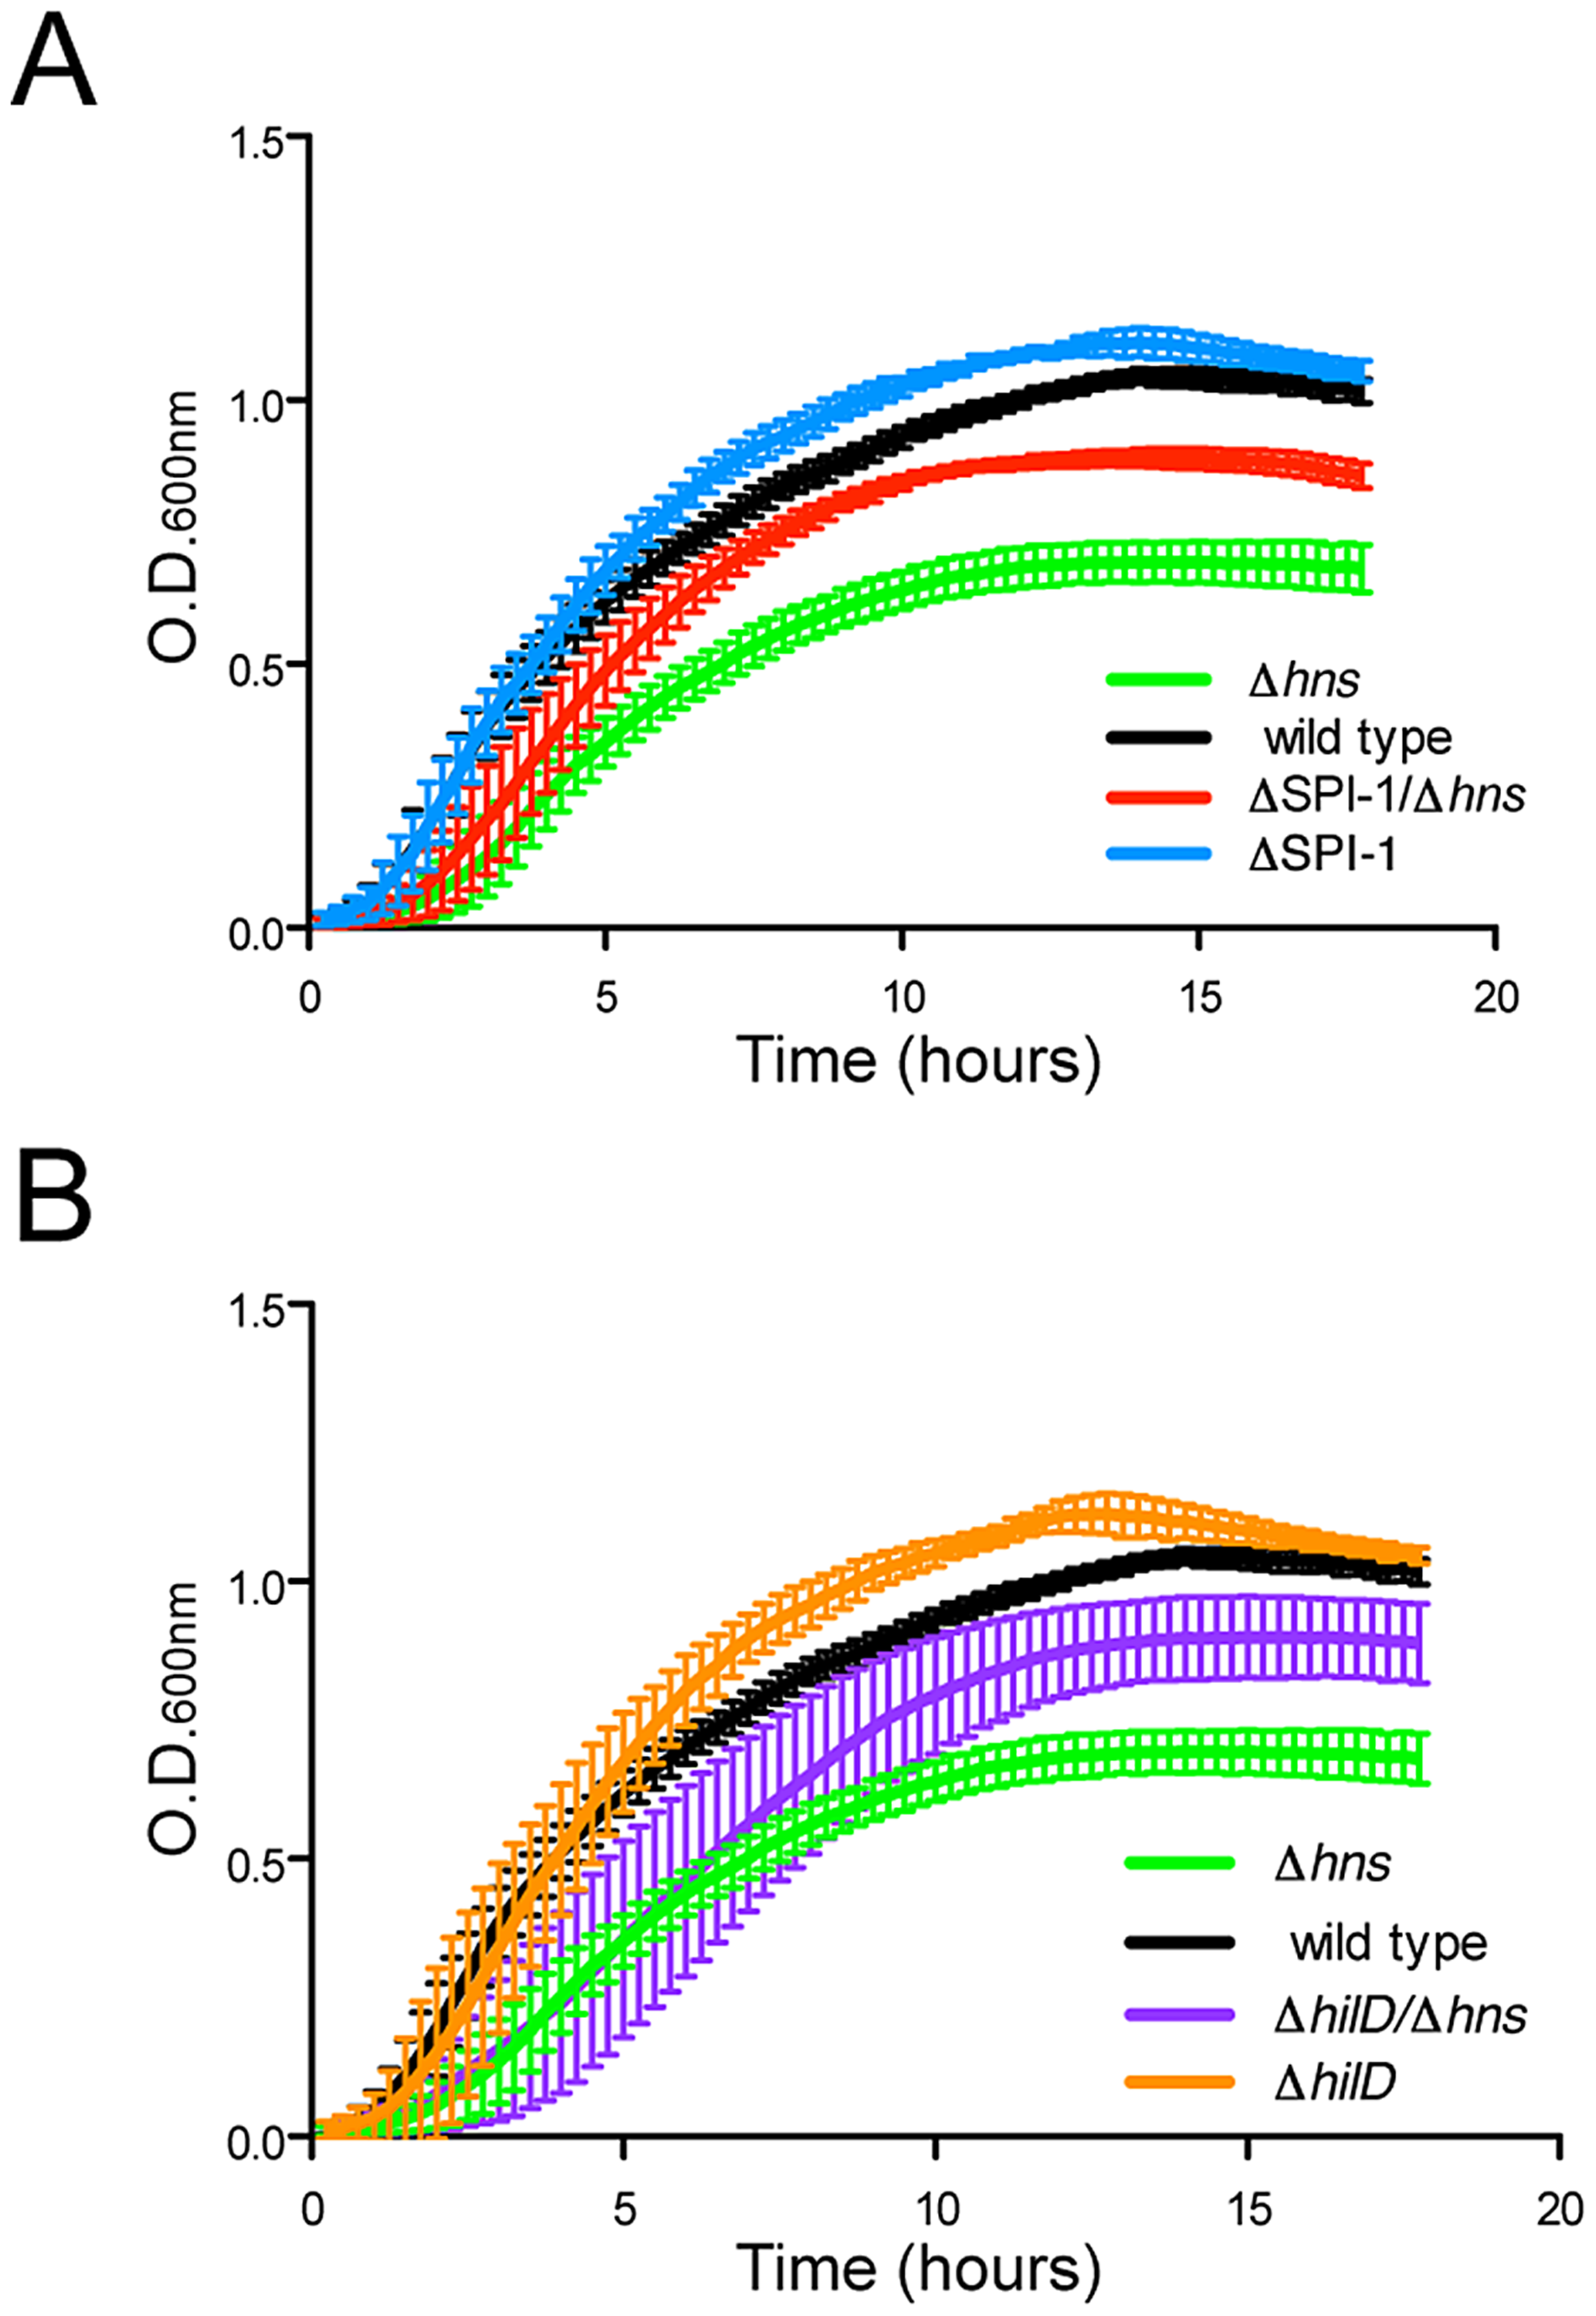 Disruption of SPI-1 expression improves fitness of an <i>hns</i> mutant.